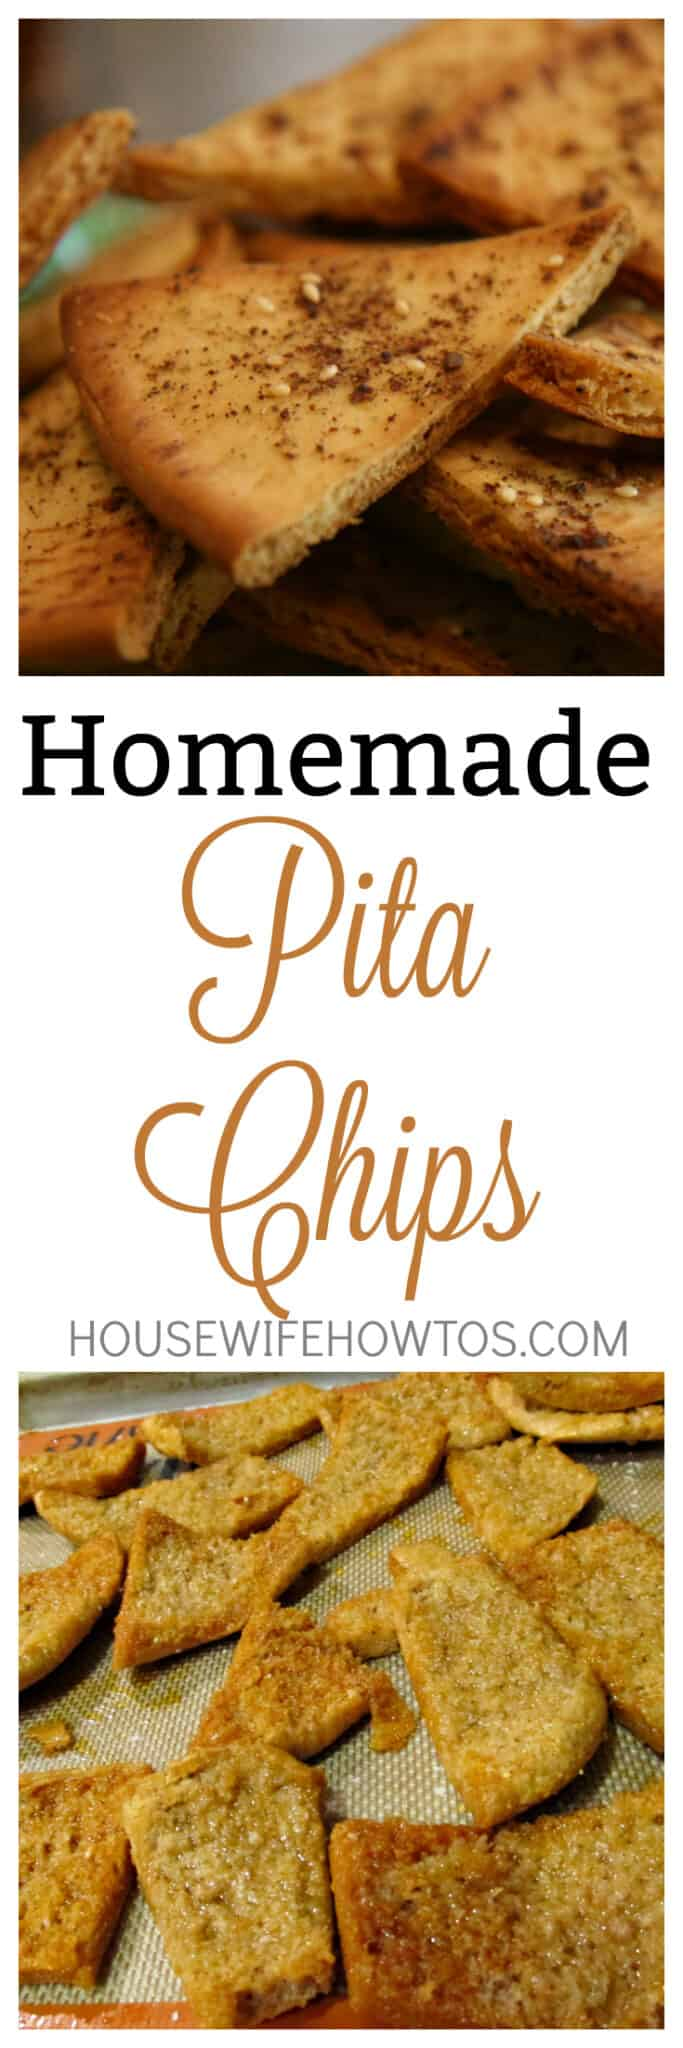 Homemade Pita Chips Recipe - You could be eating these in 15 minutes! #homemade #chips #snacks #pitabread #pitachips #appetizer